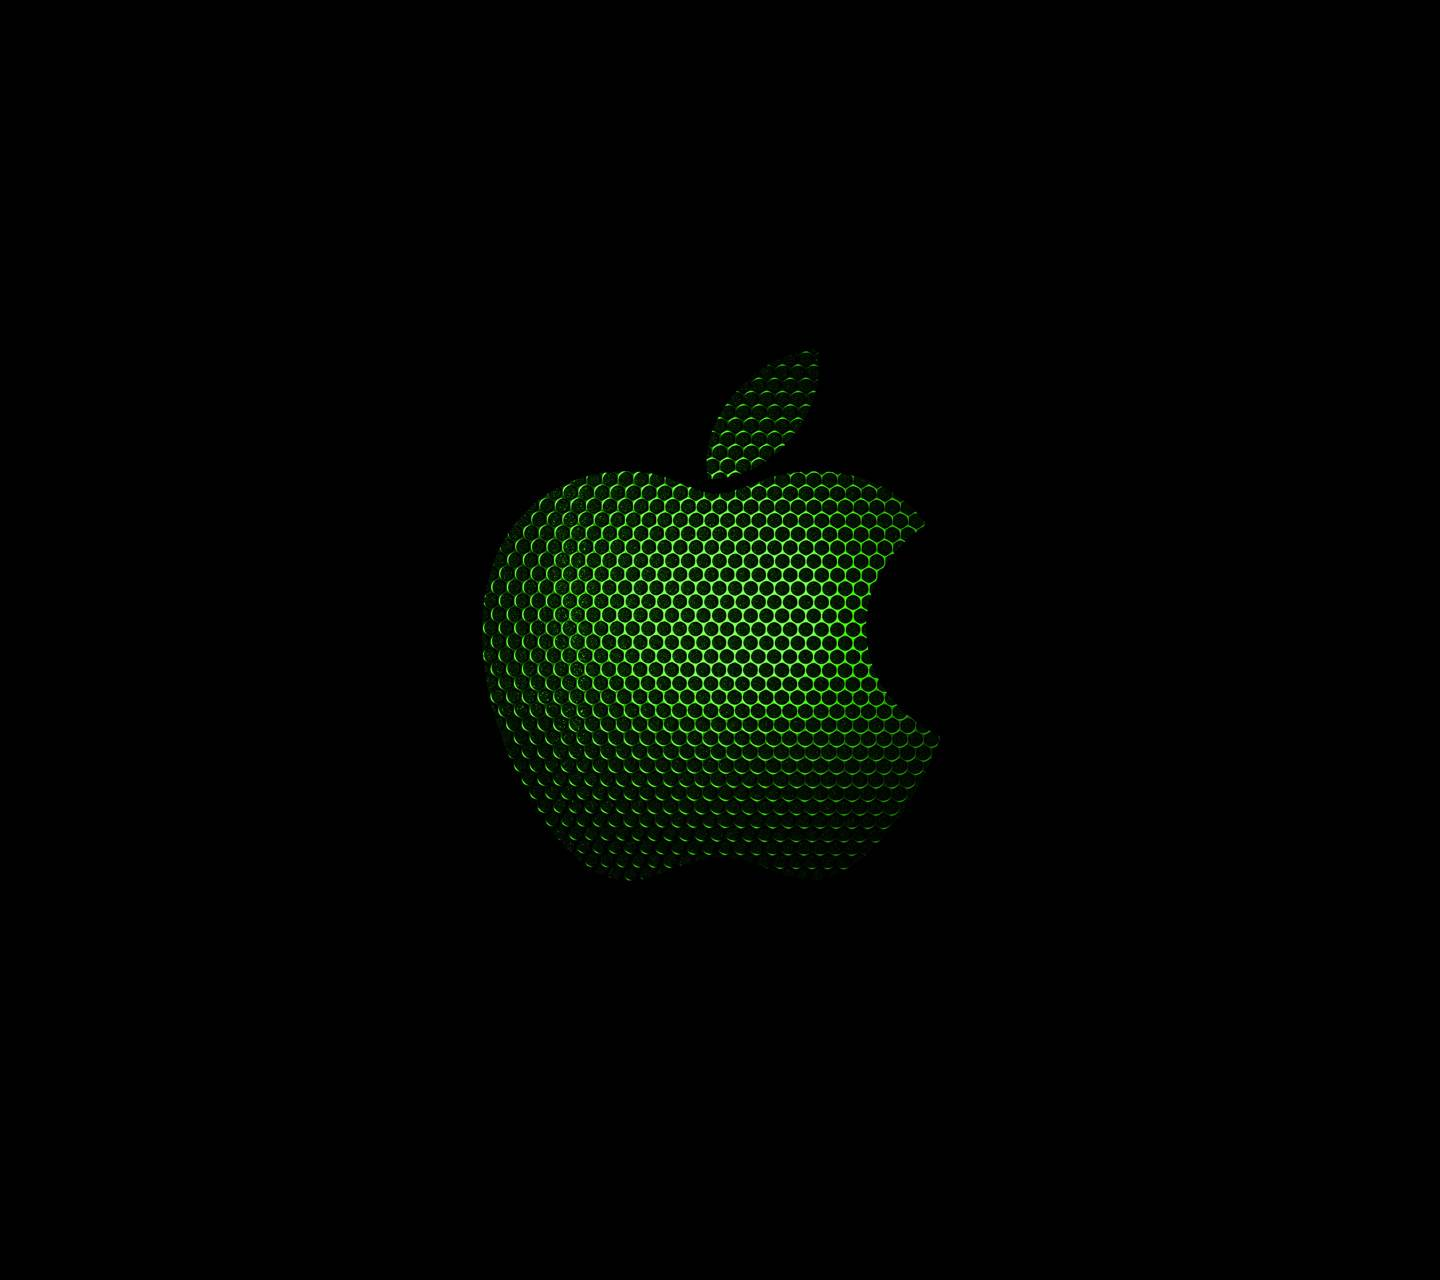 Apple style green